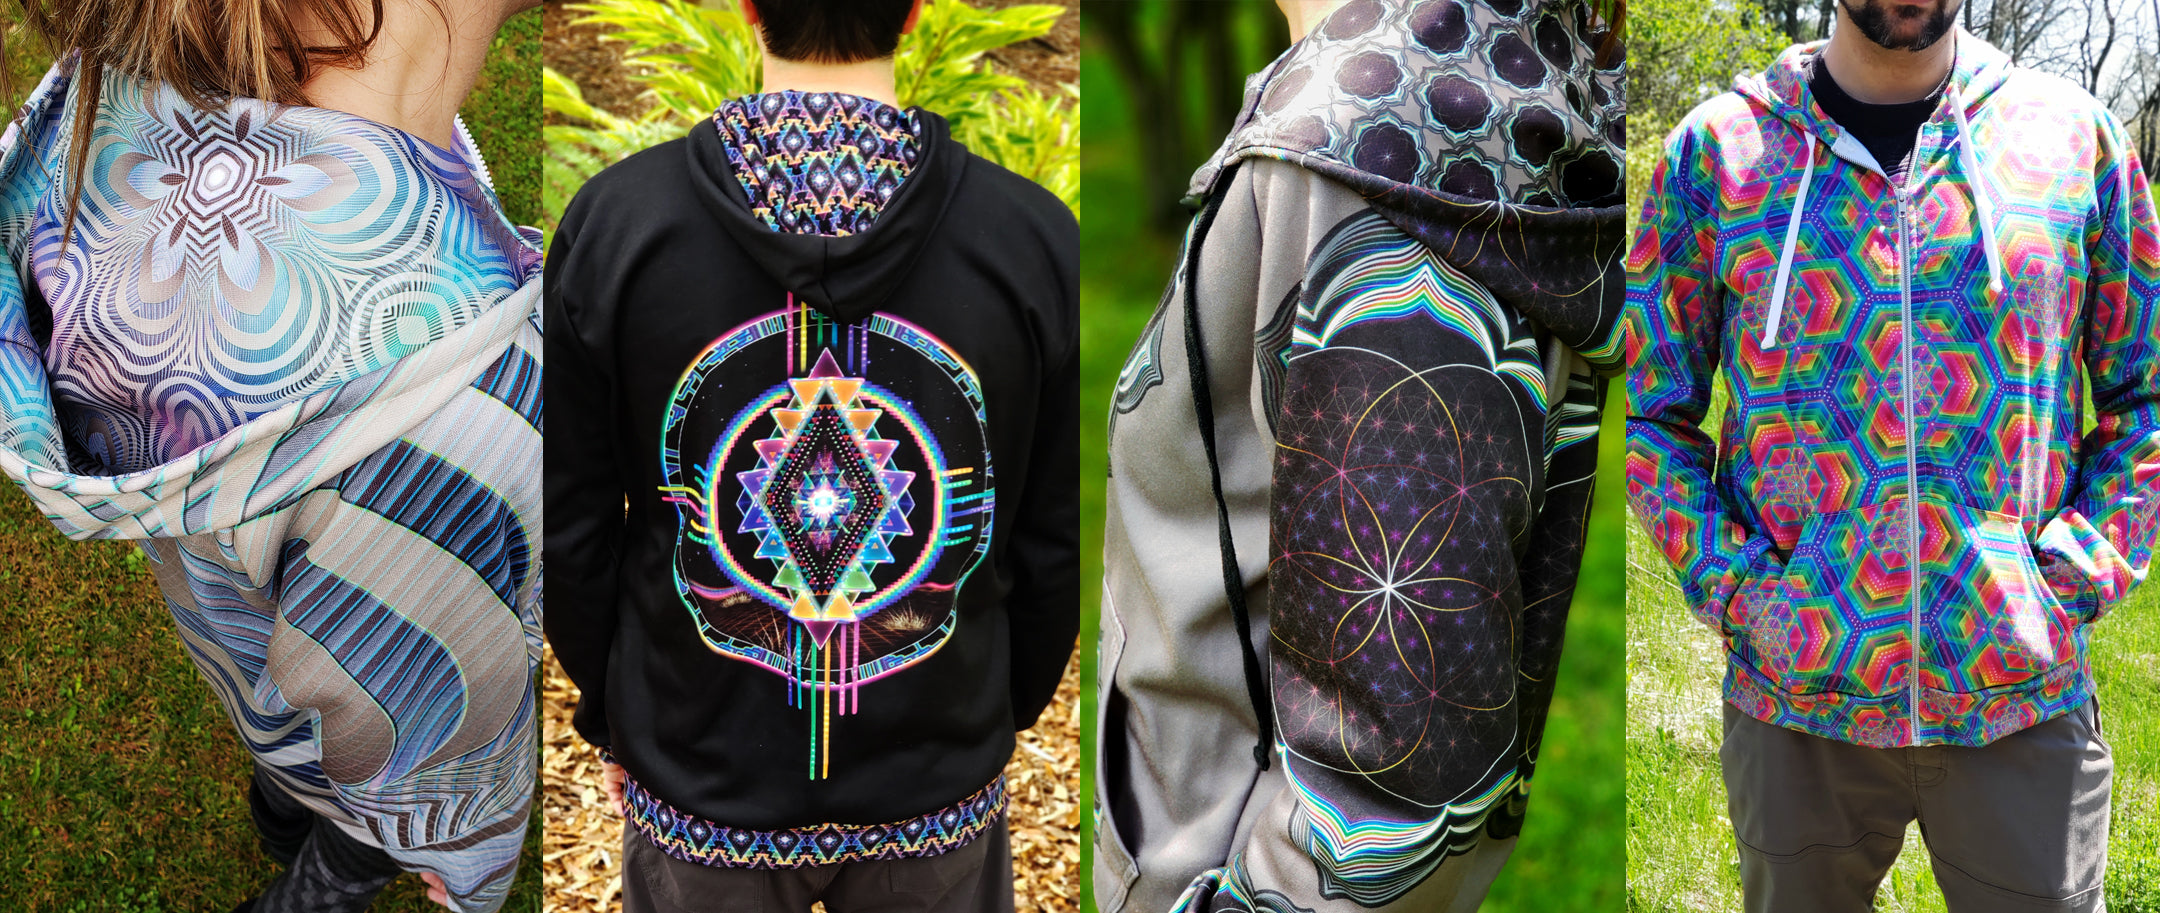 af4dcfa08f74 Limited Offer! Save $30 on all UV/RGB Reactive Psychedelic Hoodies ...